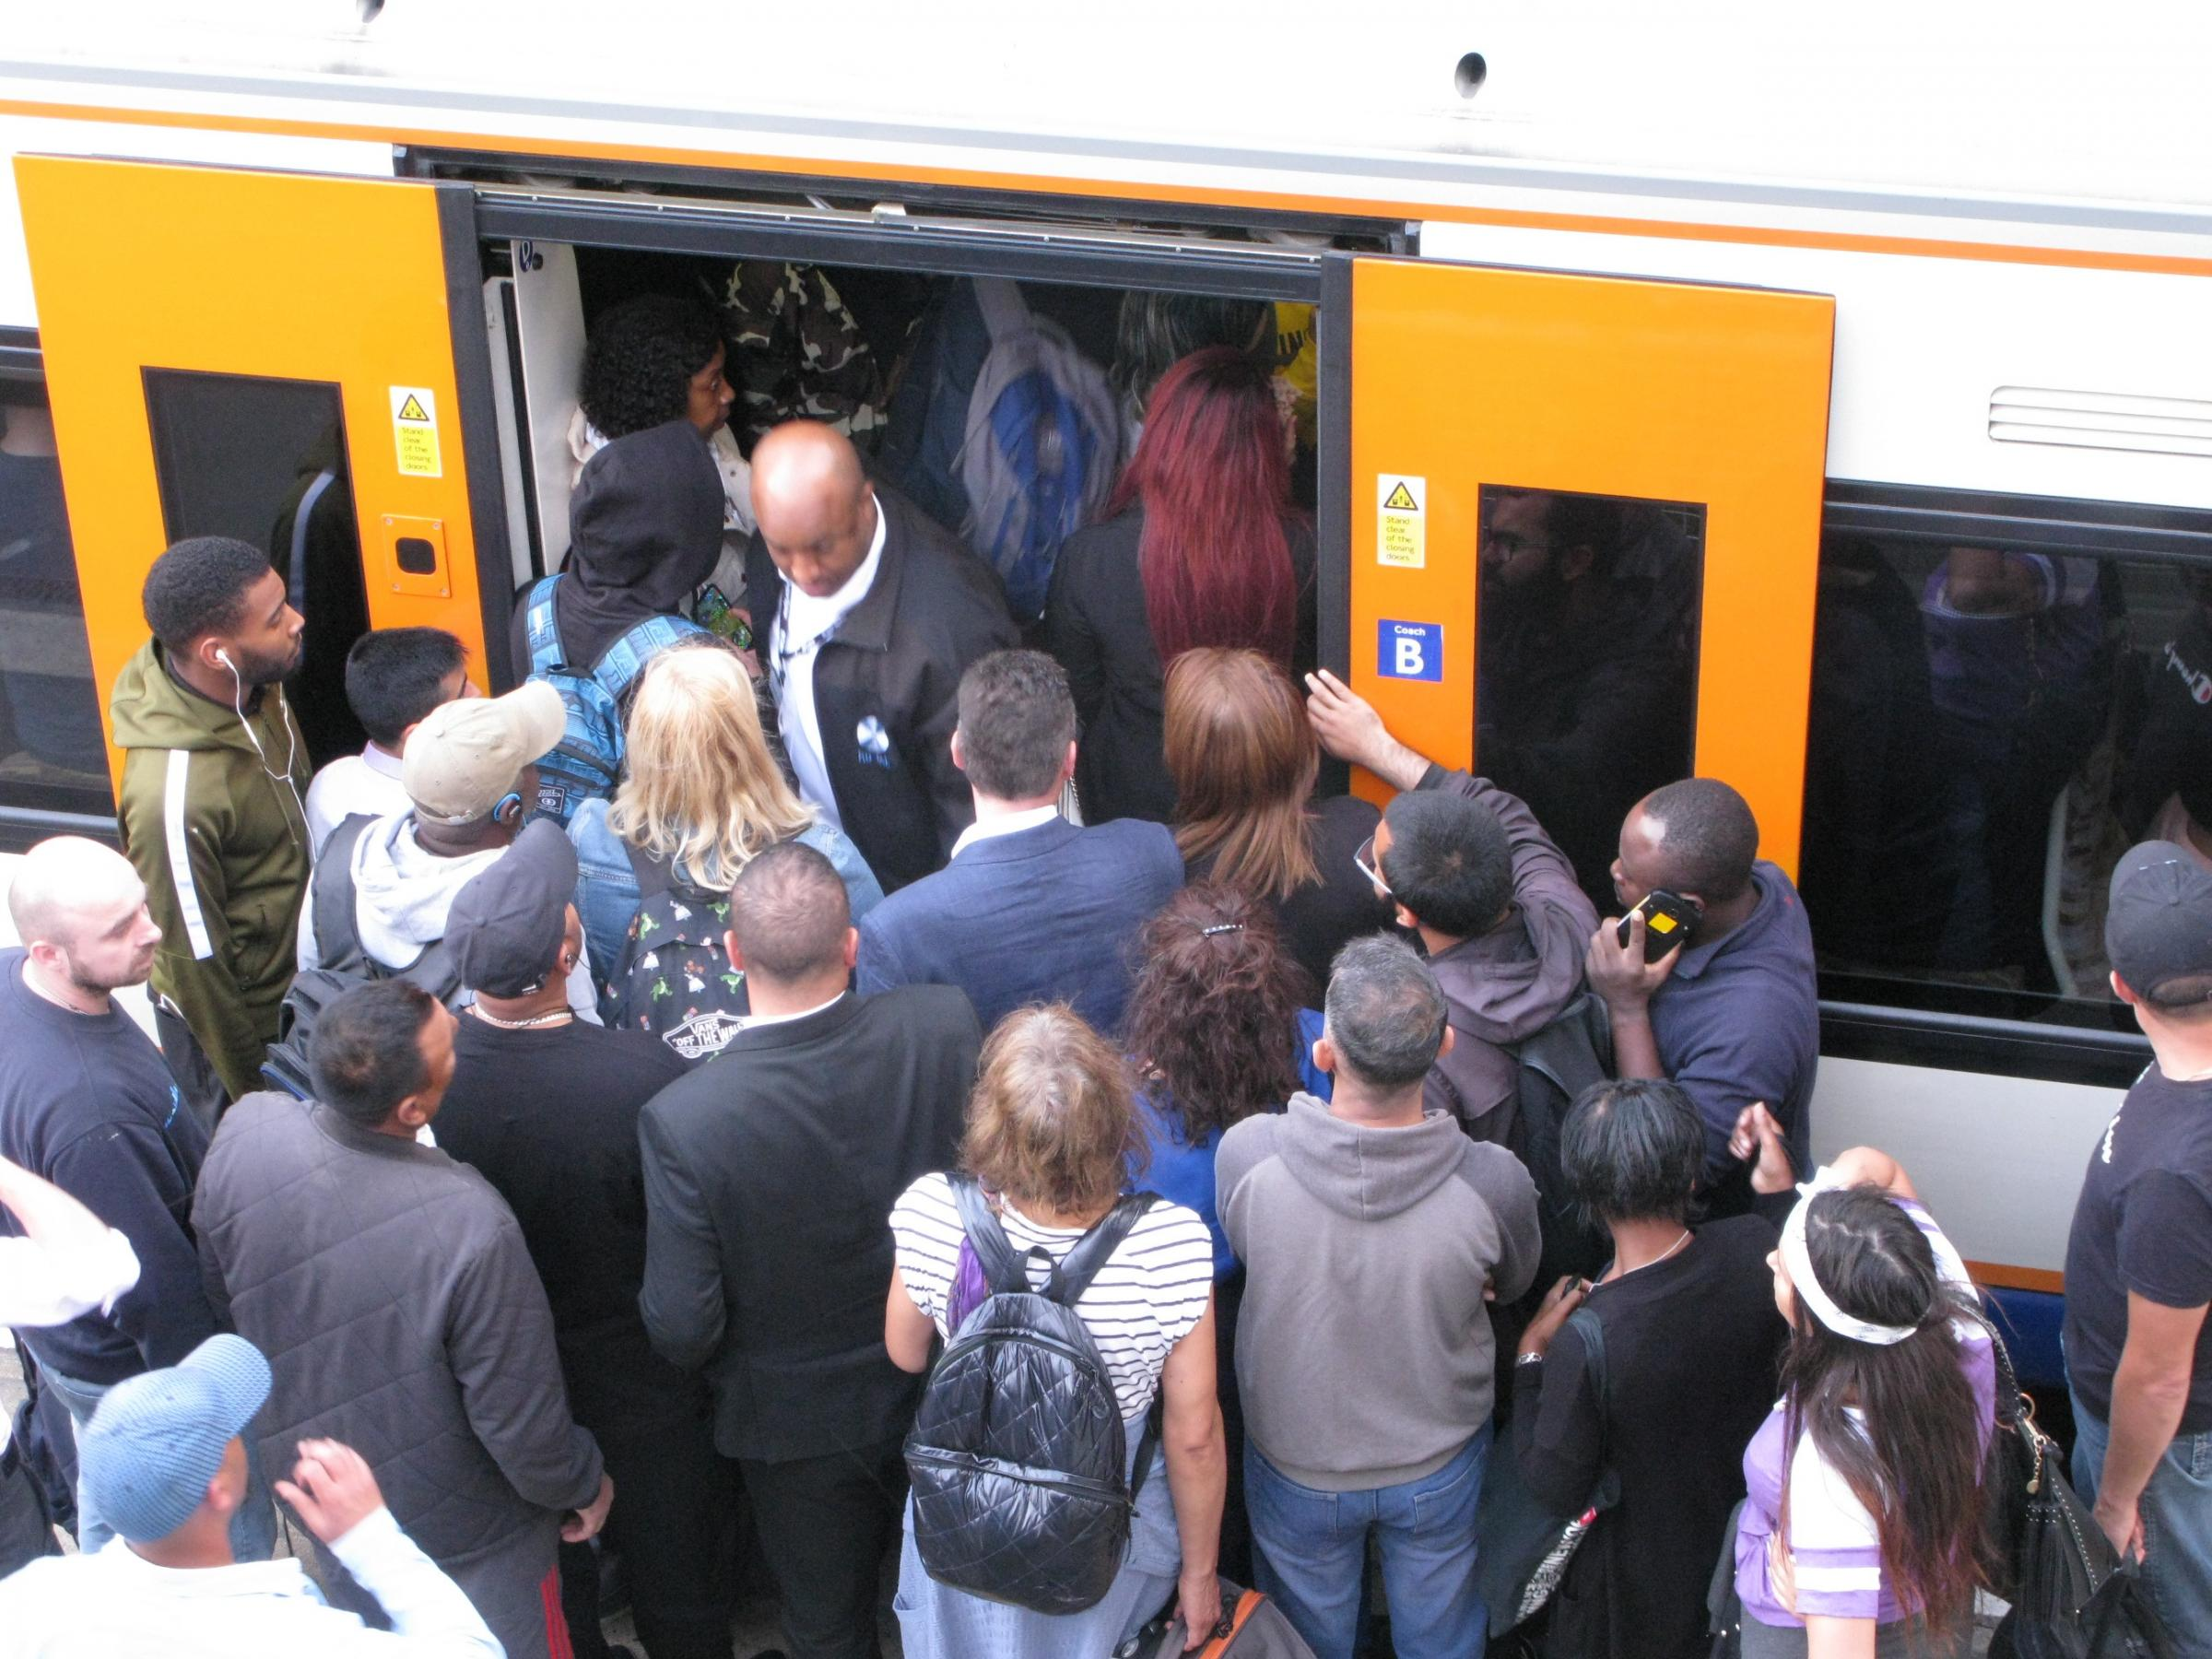 Overcrowded platform and trains at Blackhorse Road after a train was cancelled on the evening of 18 September 2018.